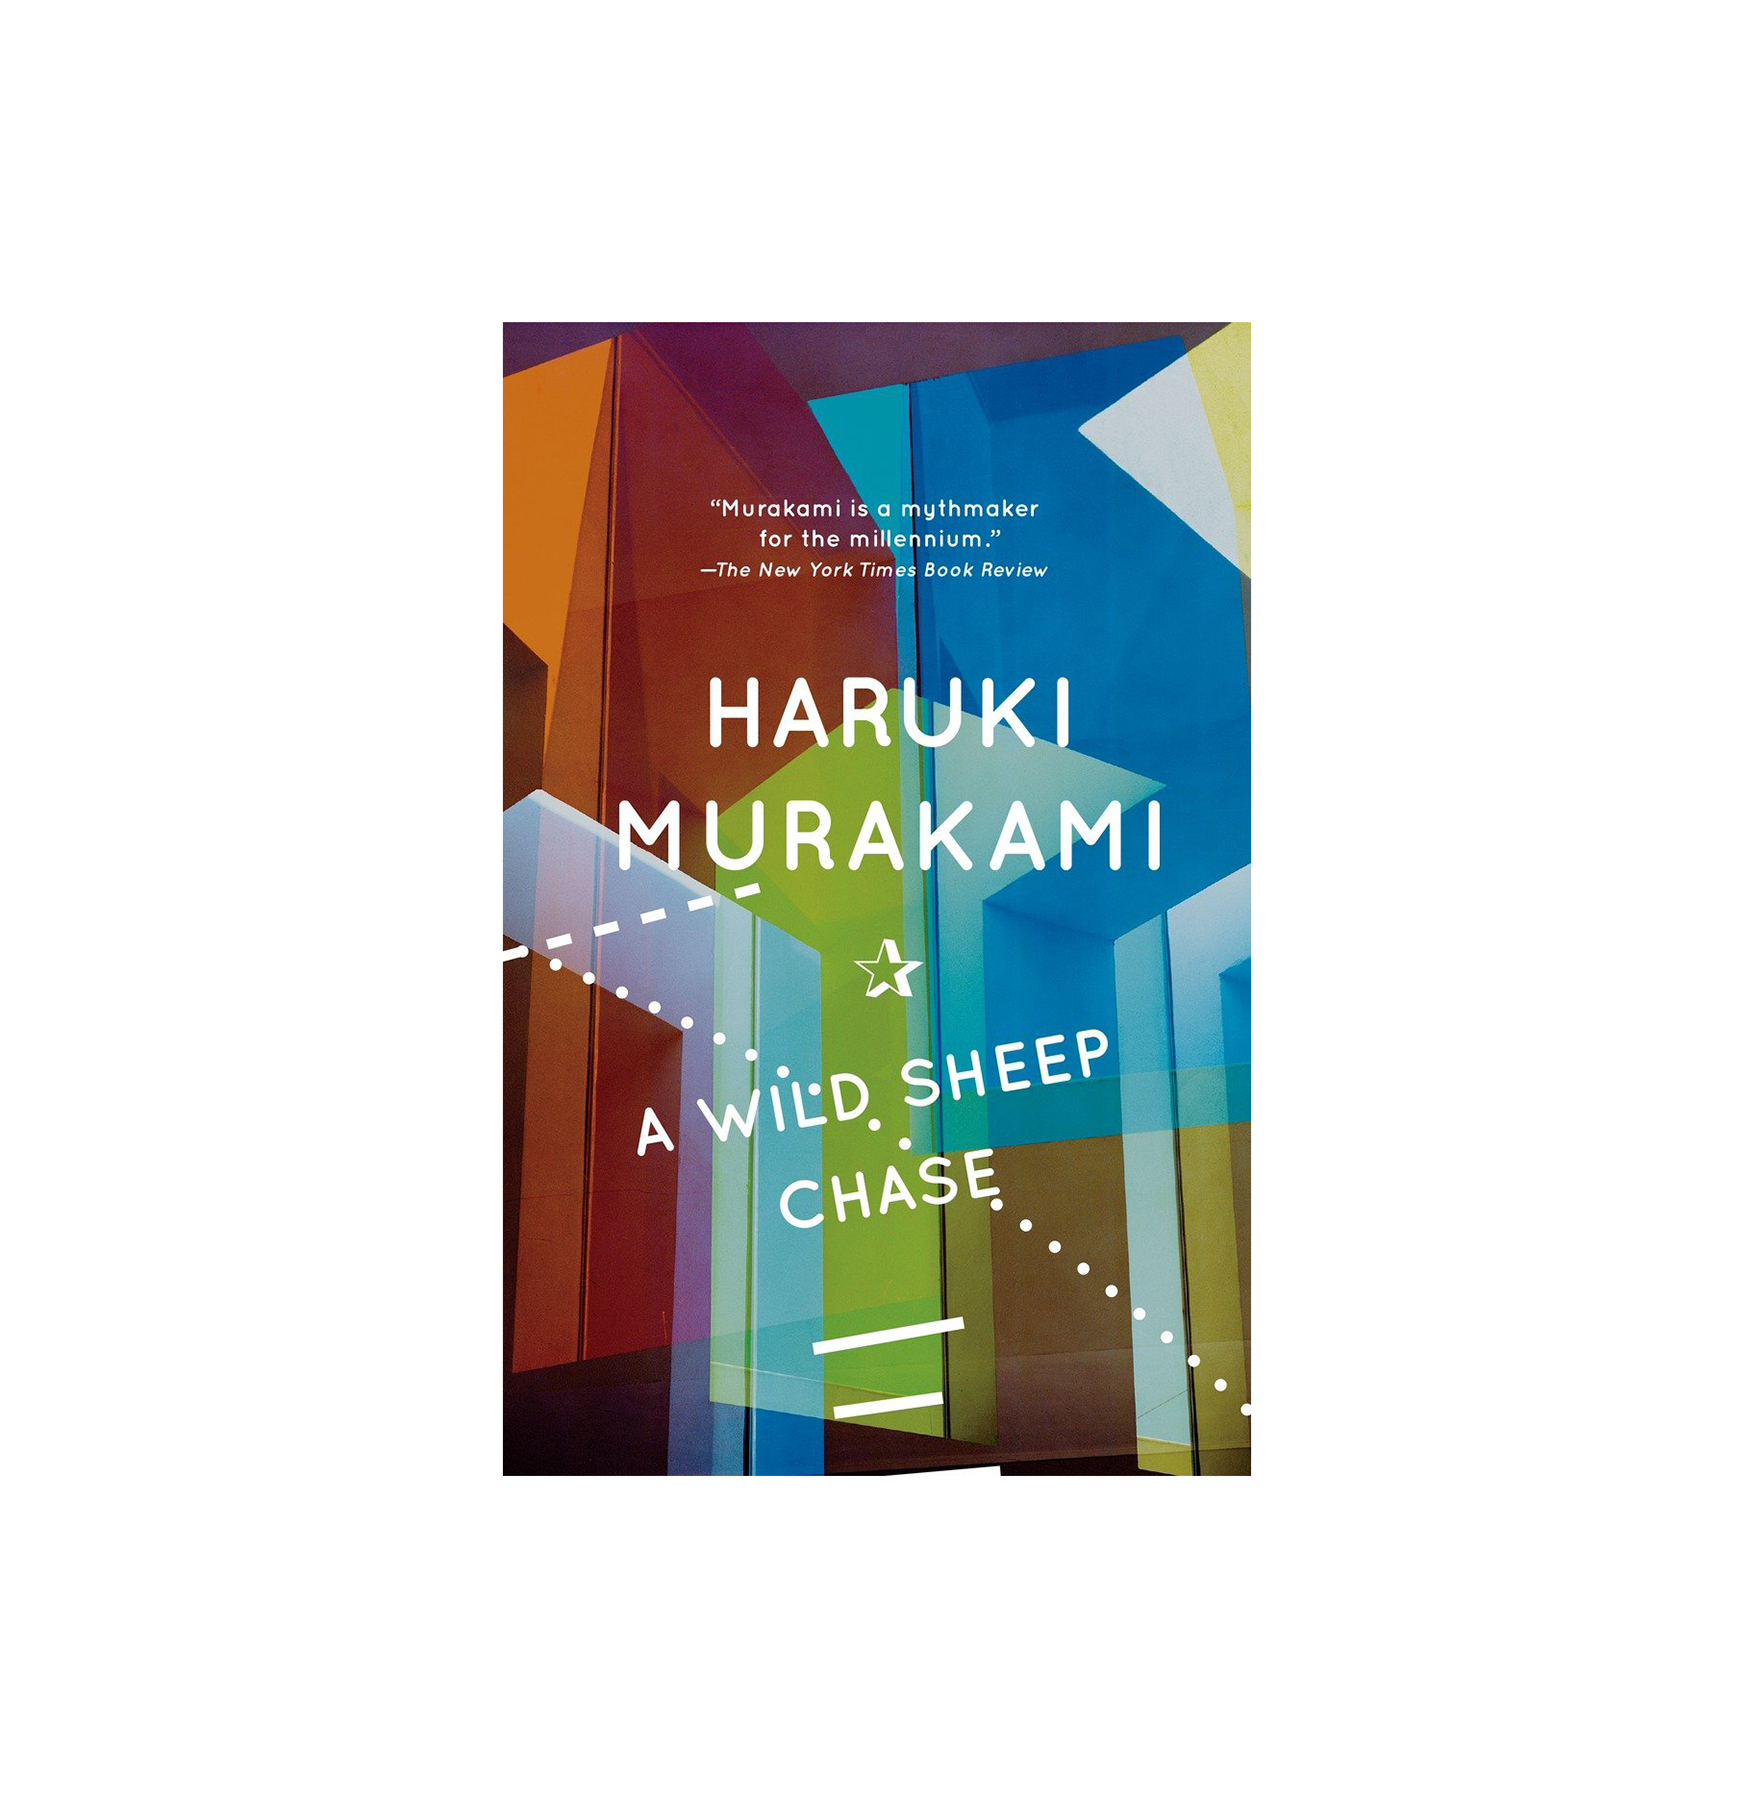 A Wild Sheep Chase, by Haruki Murakami